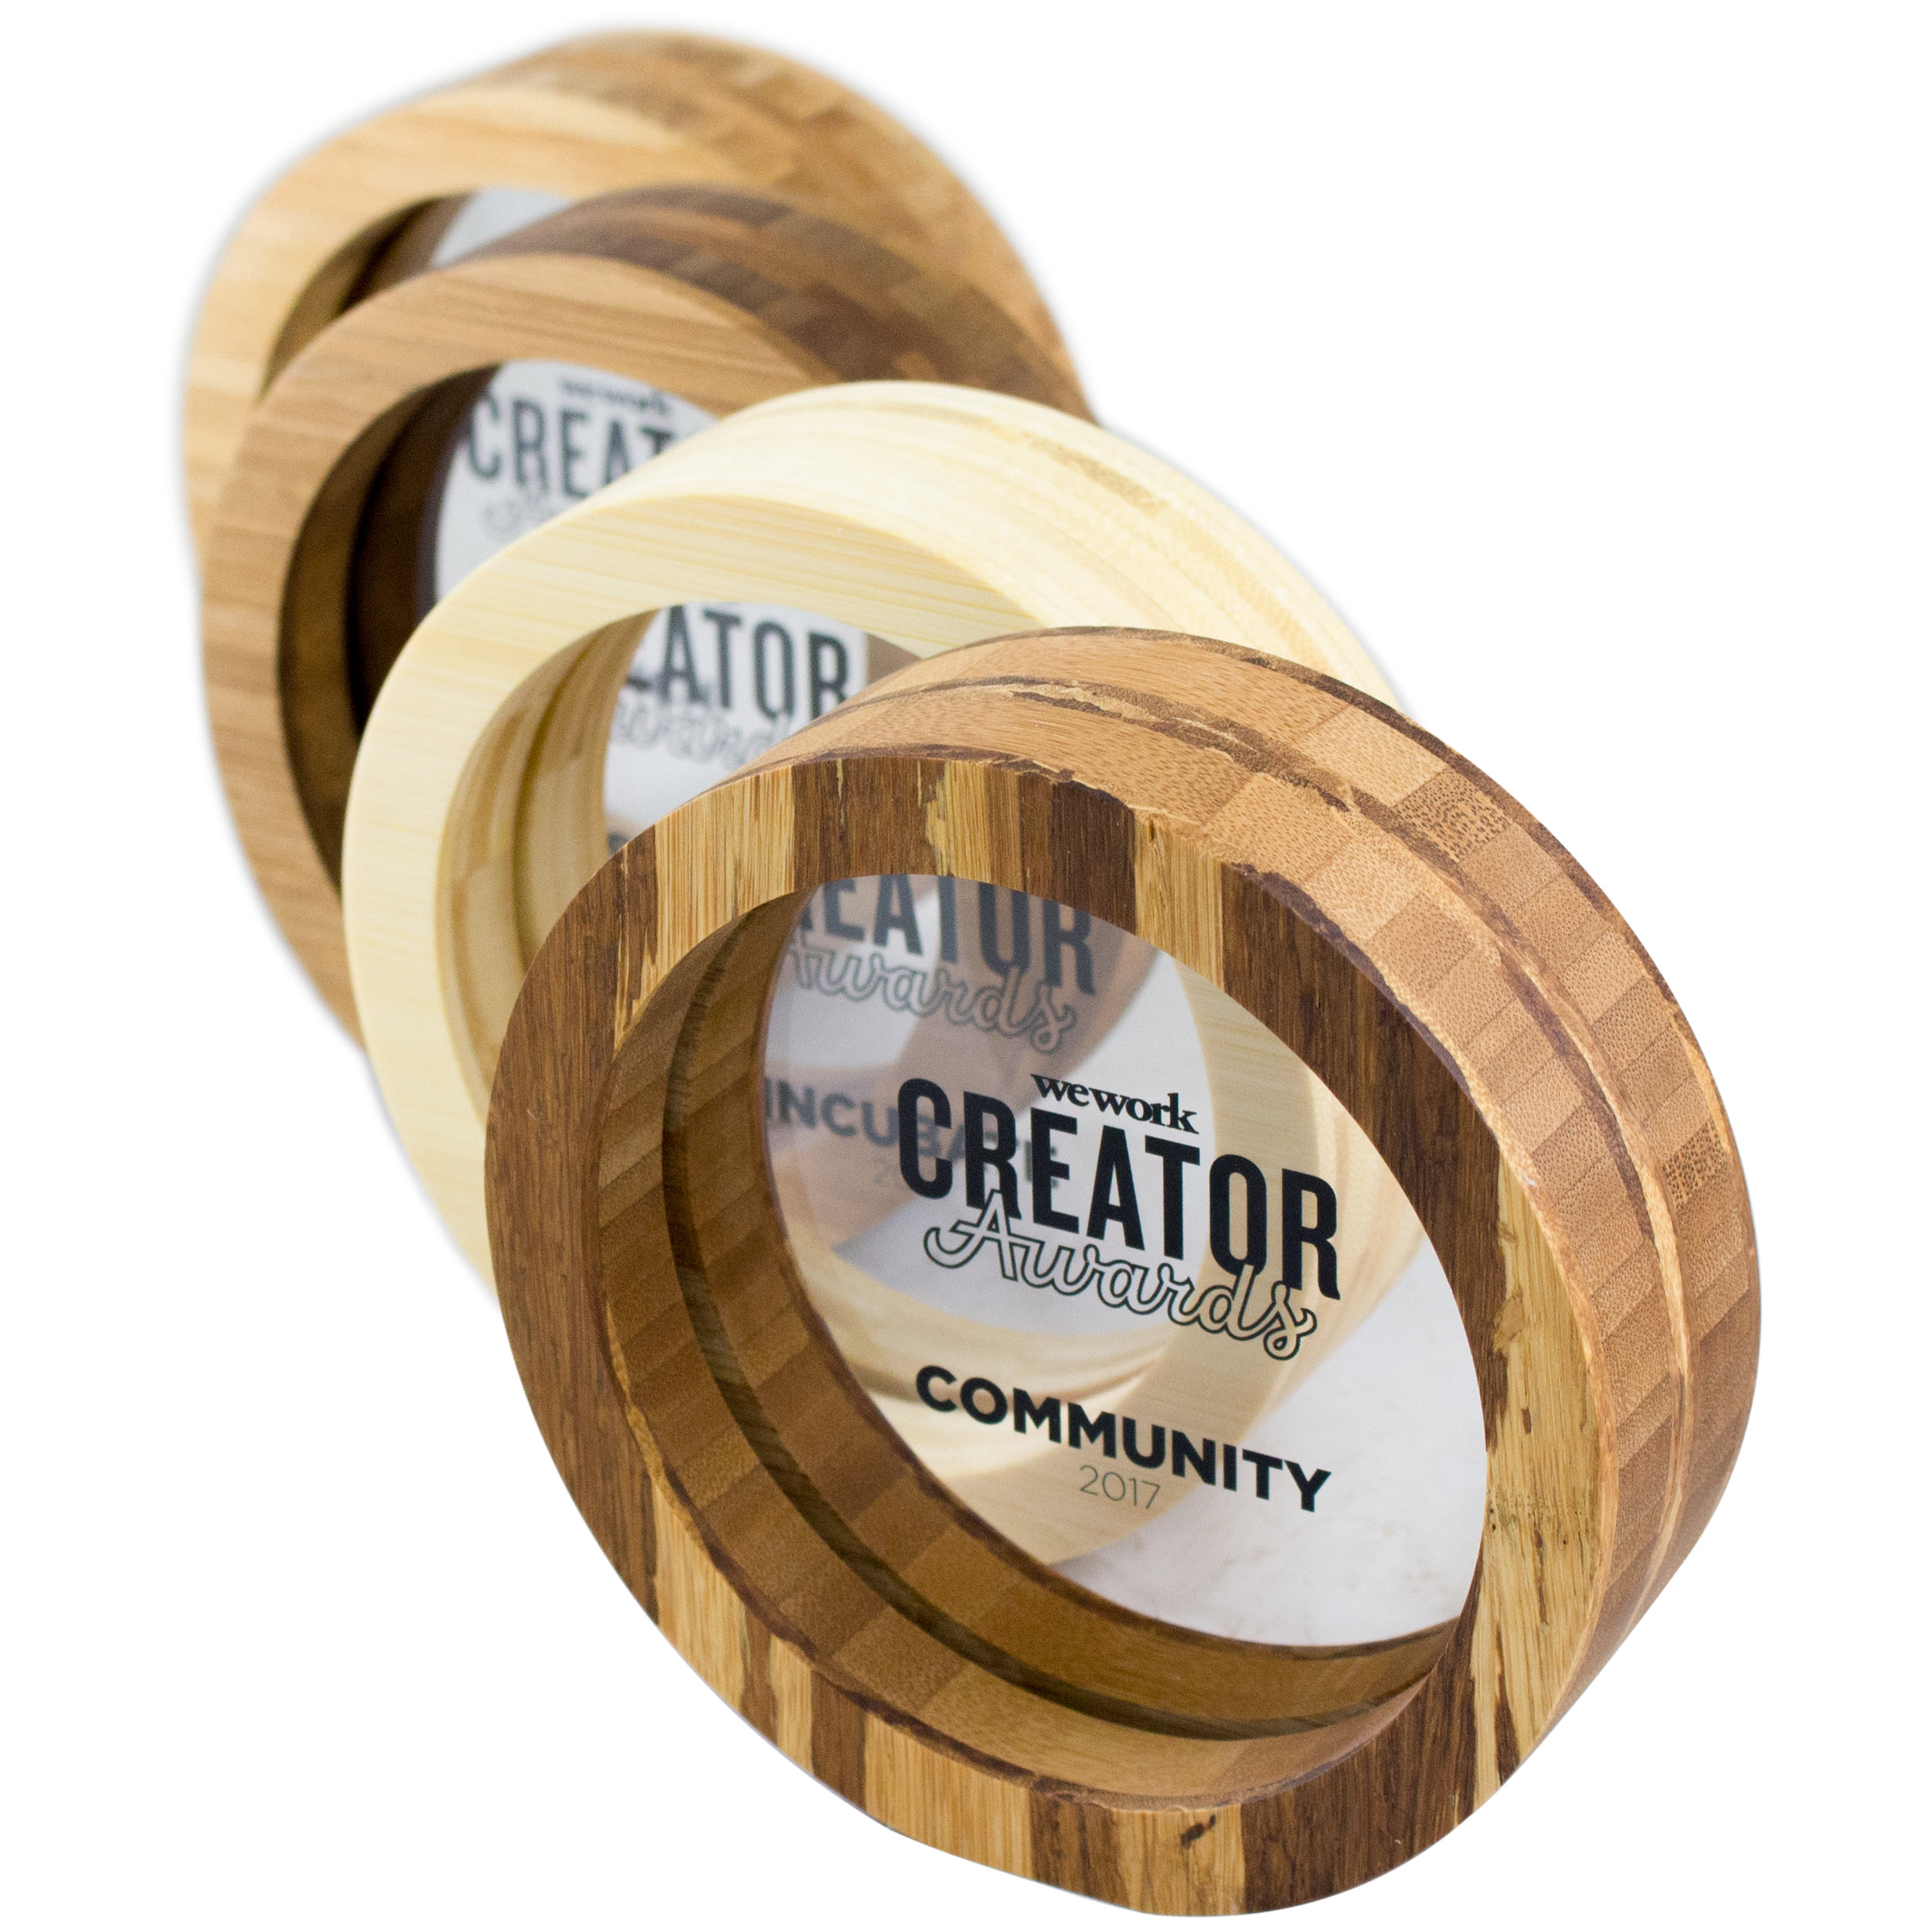 wework-creator-awards-custom-trophies-unique